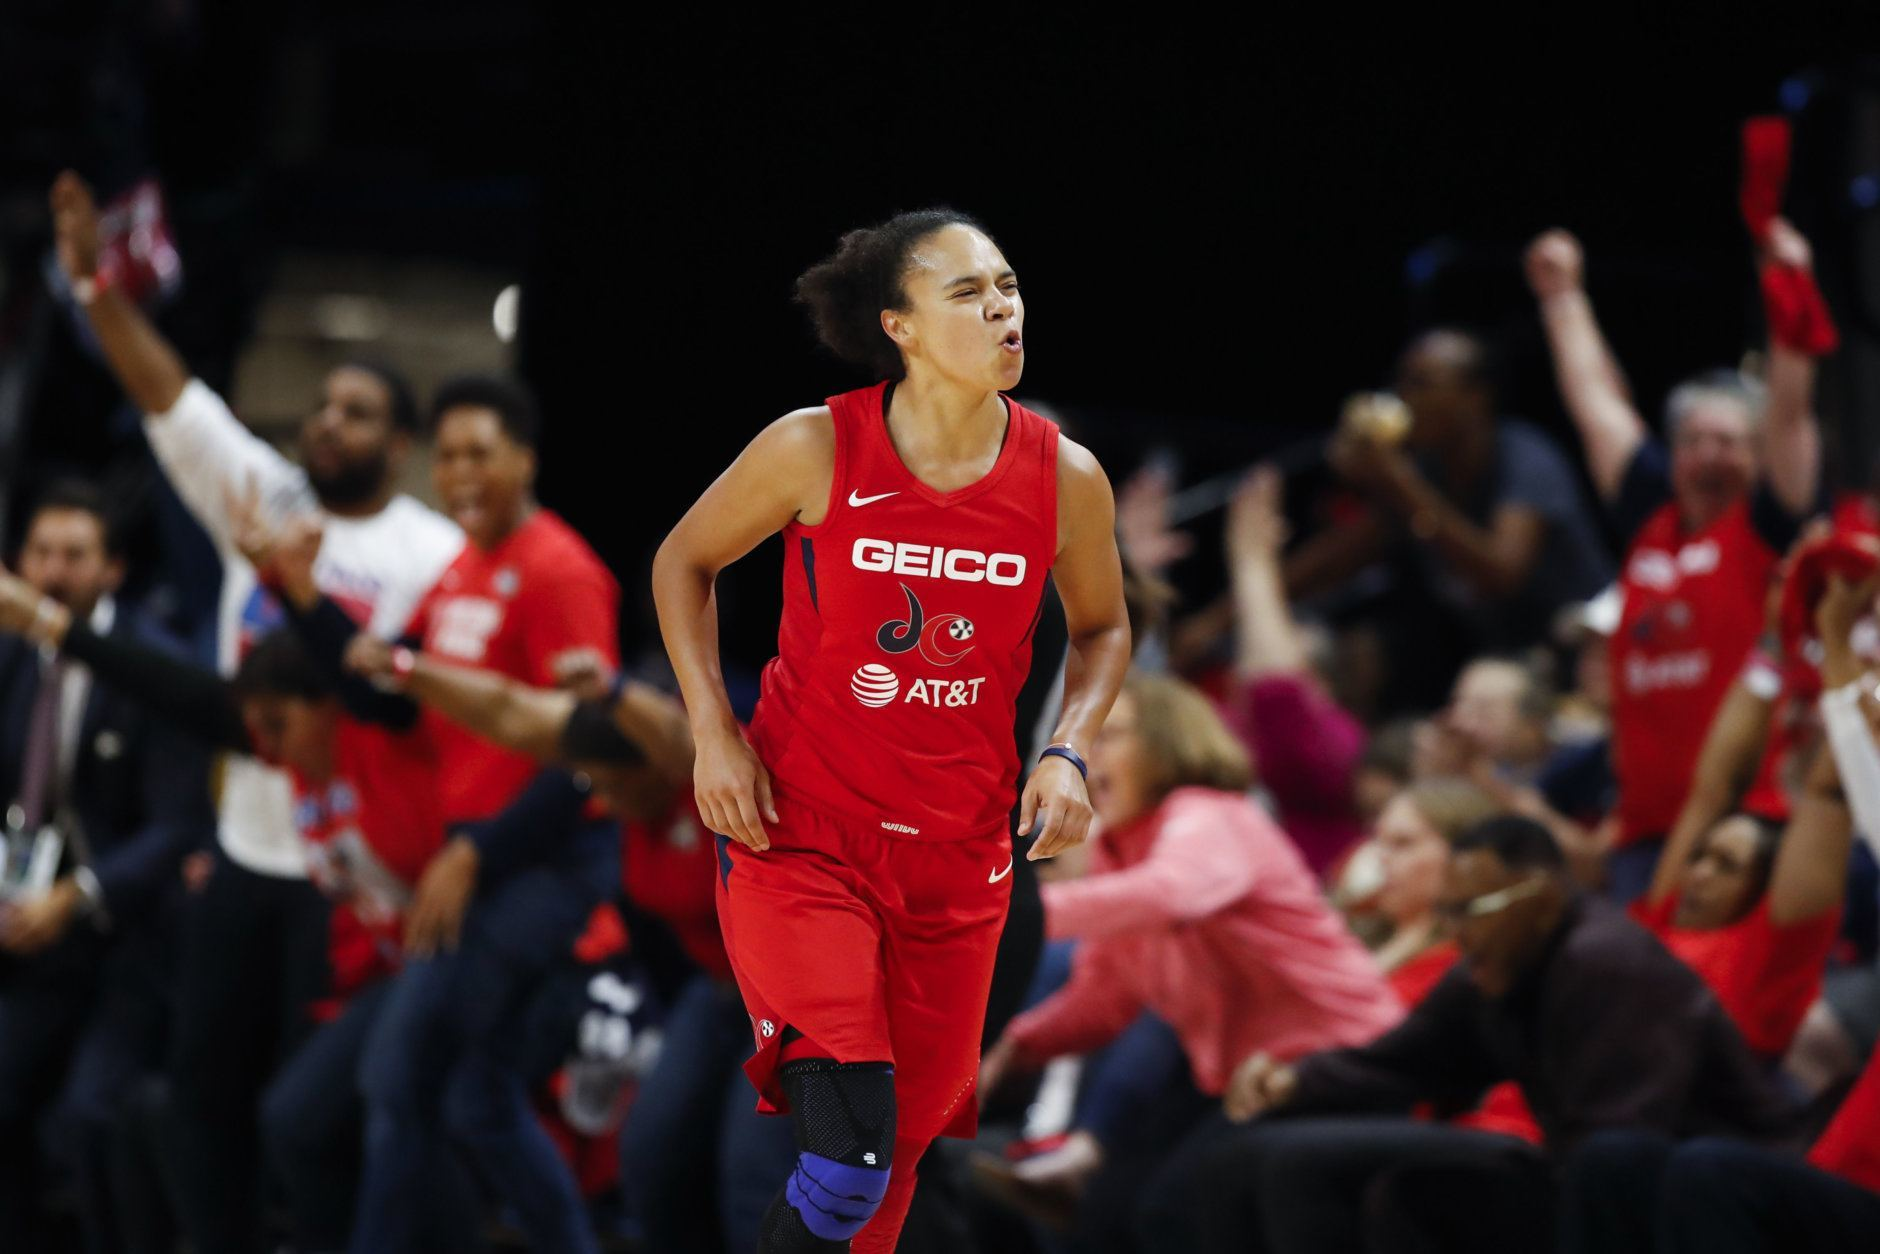 Washington Mystics guard Kristi Toliver celebrates after her three-point basket during the first half of Game 5 of basketball's WNBA Finals against the Connecticut Sun, Thursday, Oct. 10, 2019, in Washington. (AP Photo/Alex Brandon)